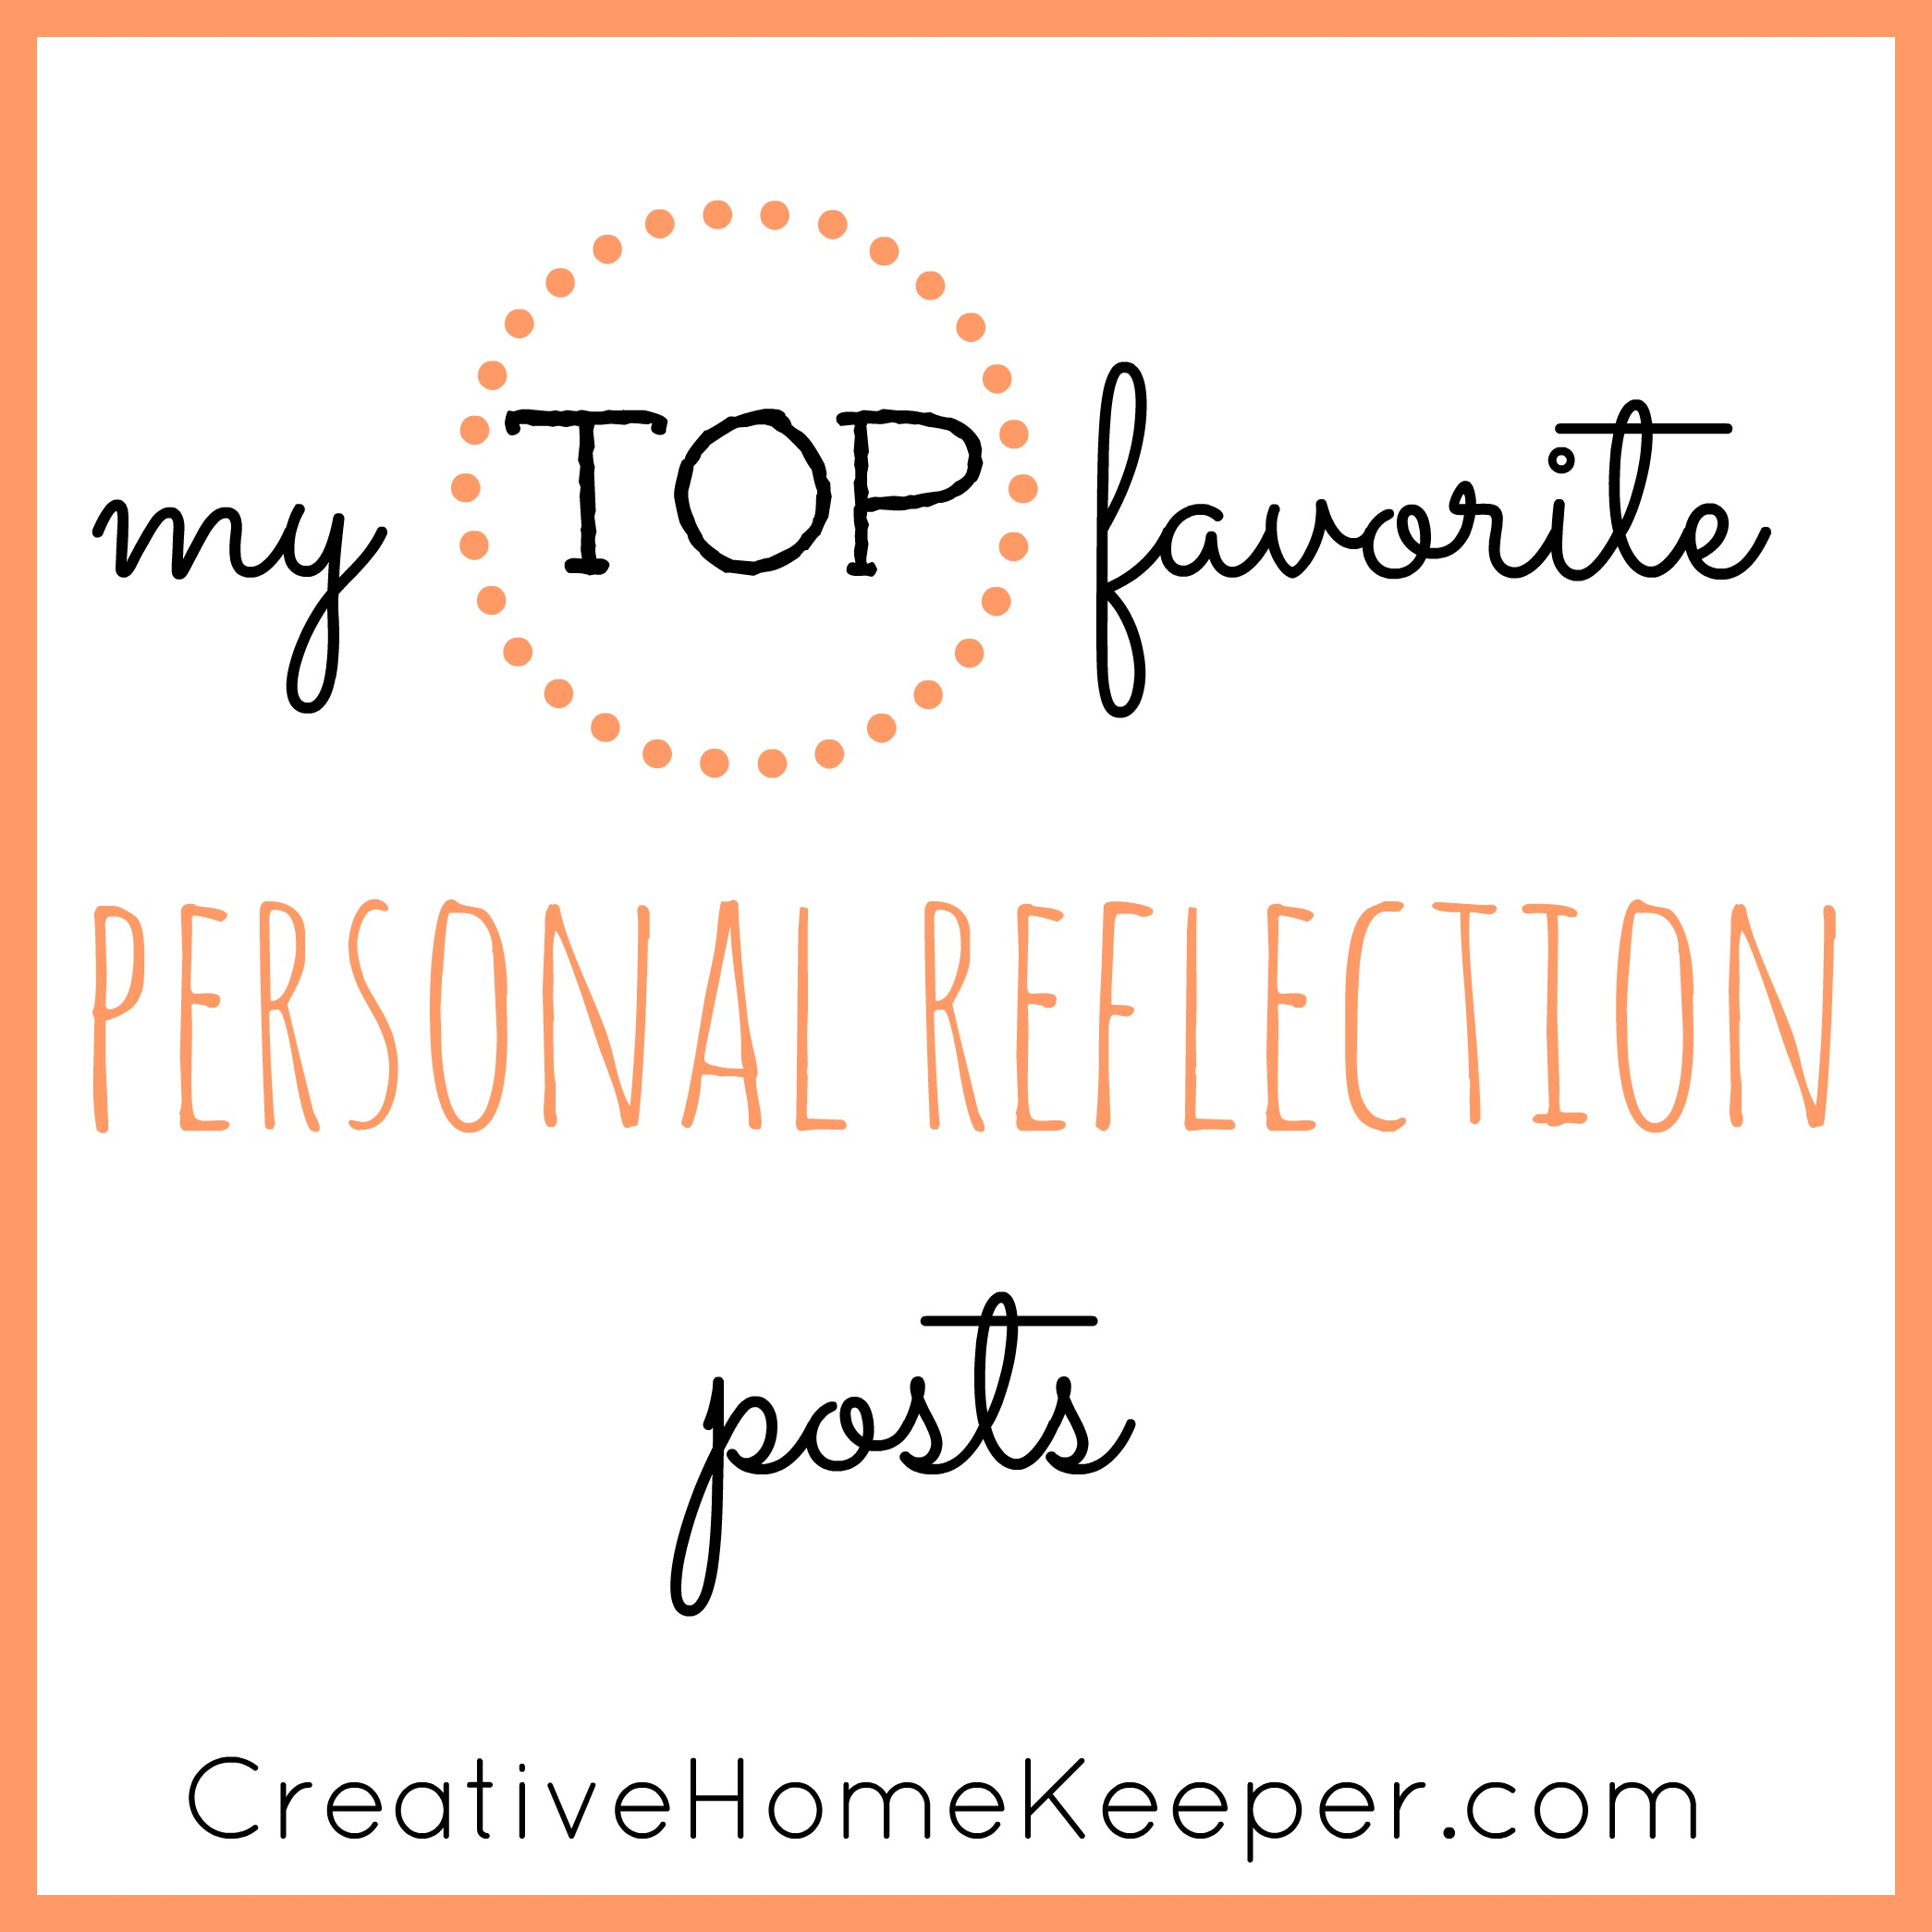 My Top Favorite Personal Reflection Posts